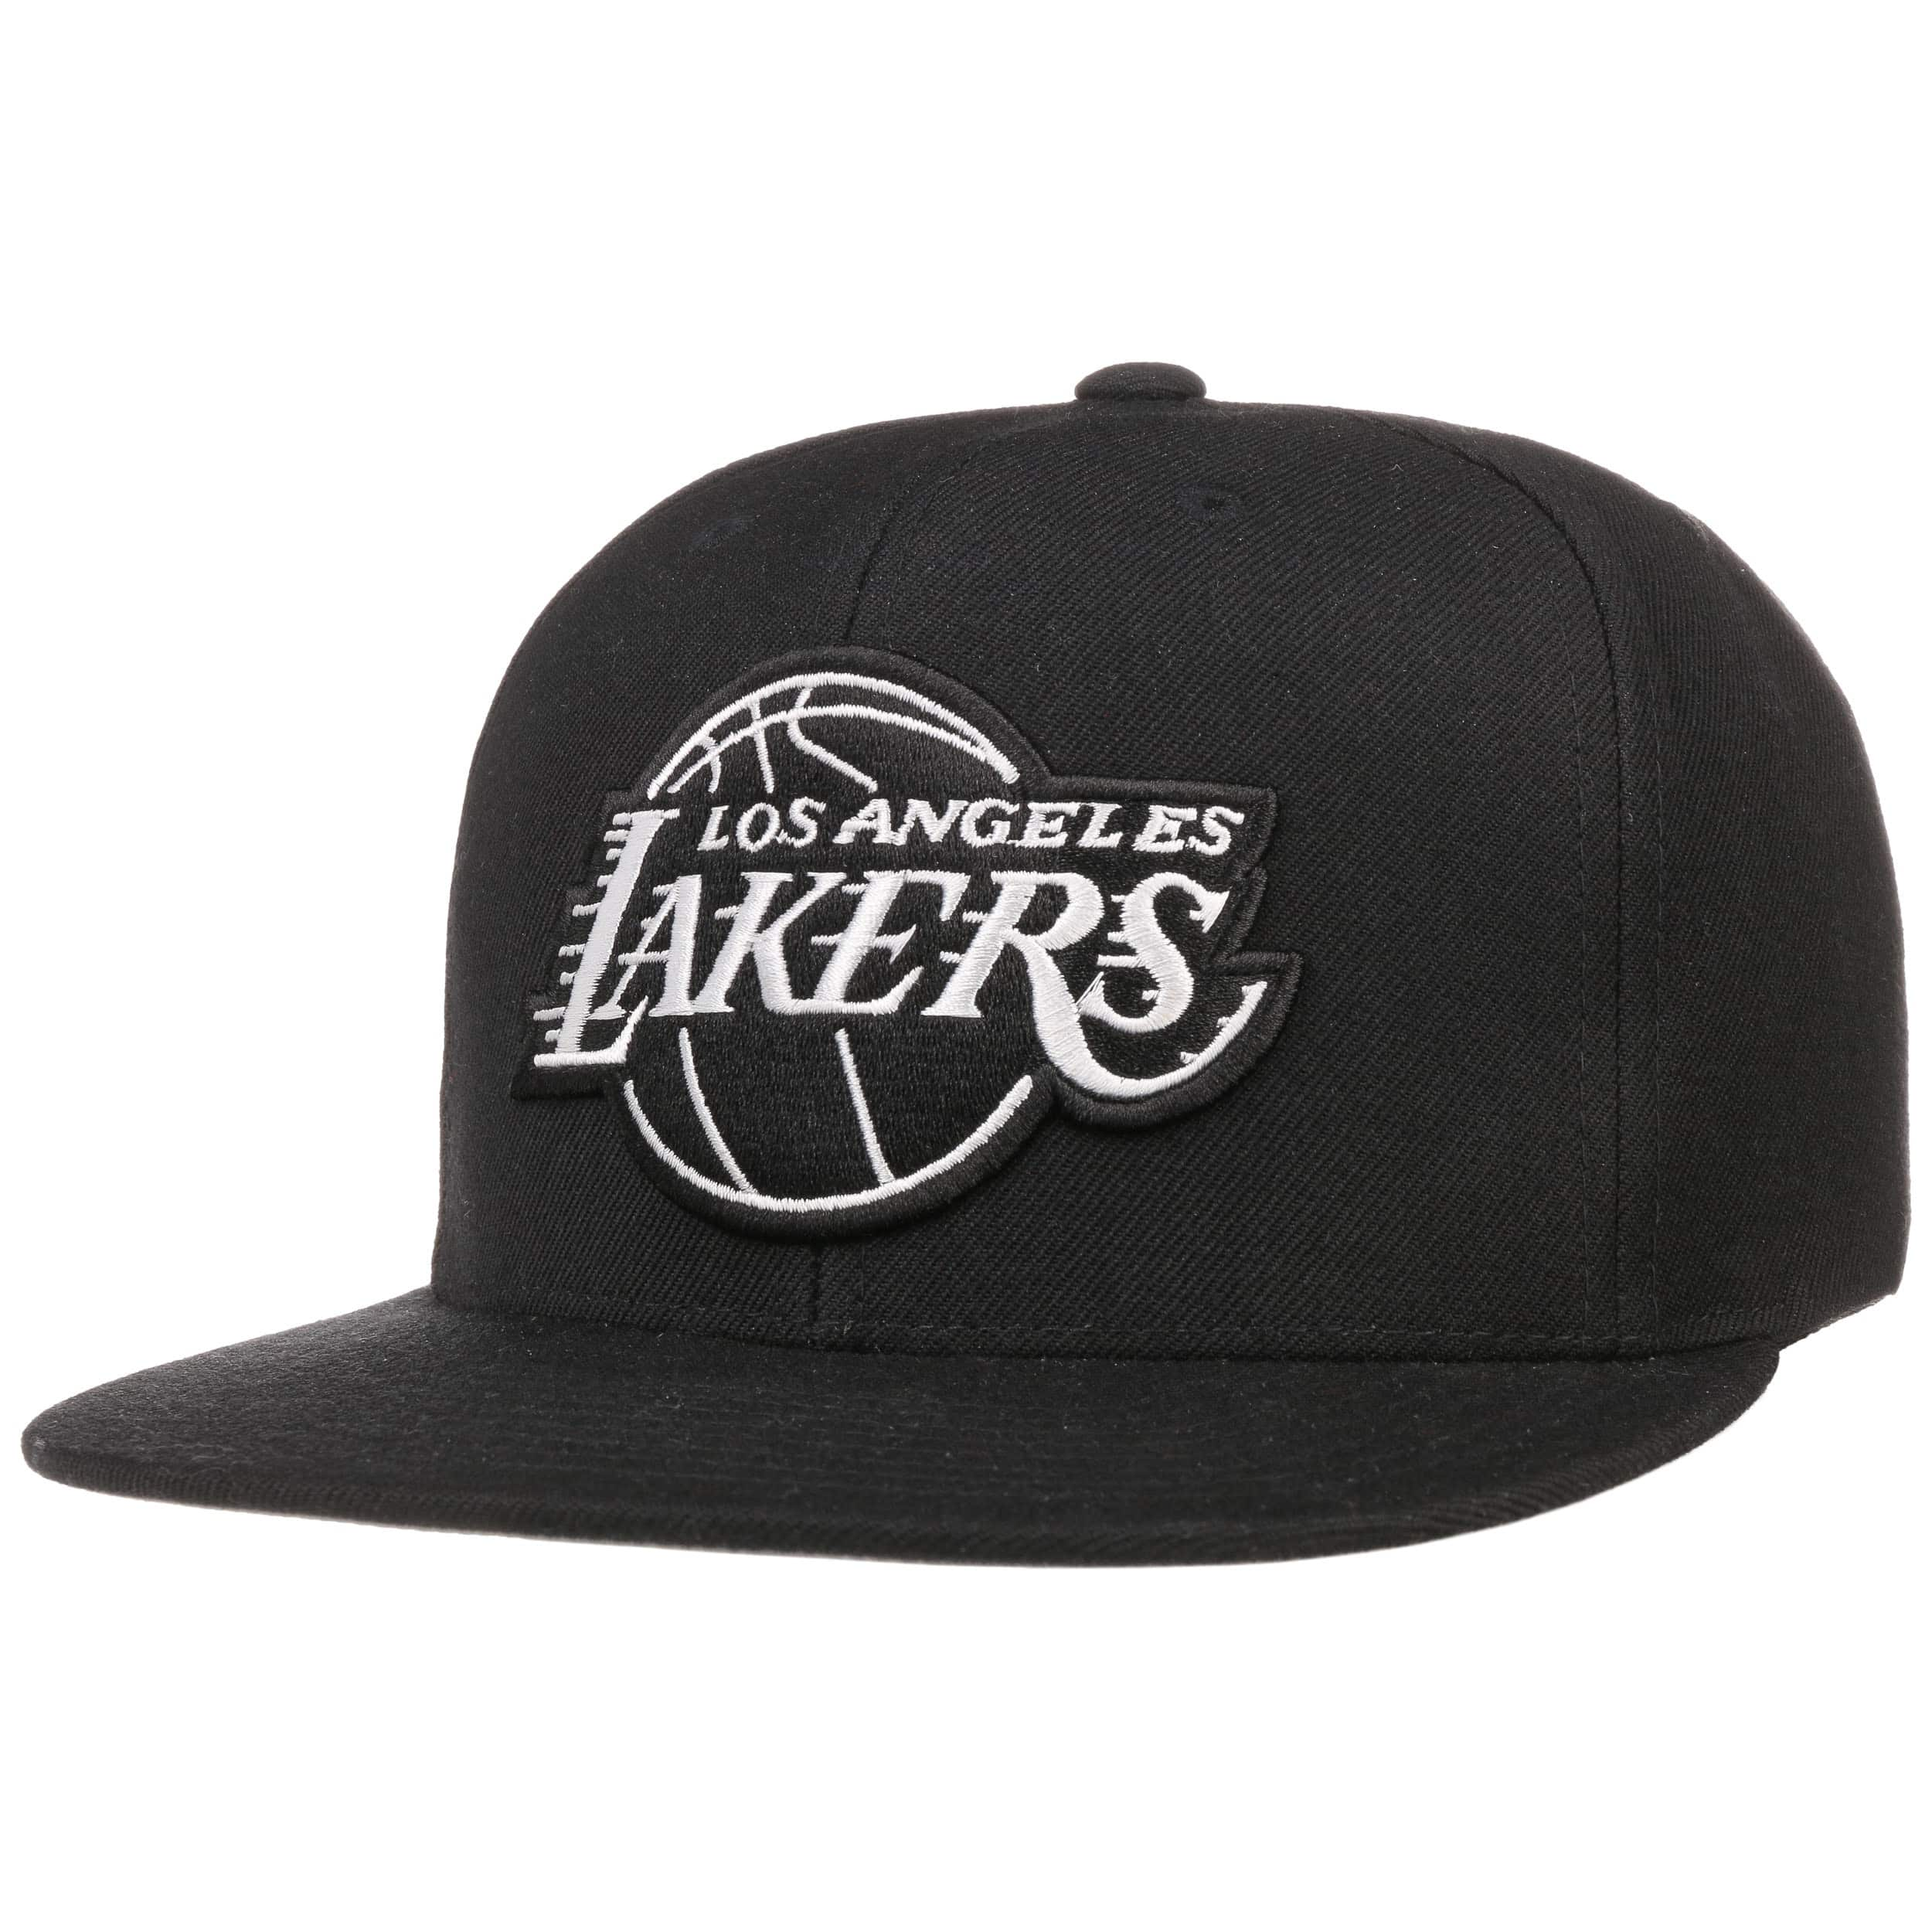 ... Gorra Wool Solid B W Lakers by Mitchell   Ness - negro-blanco 5 75f73142c9d